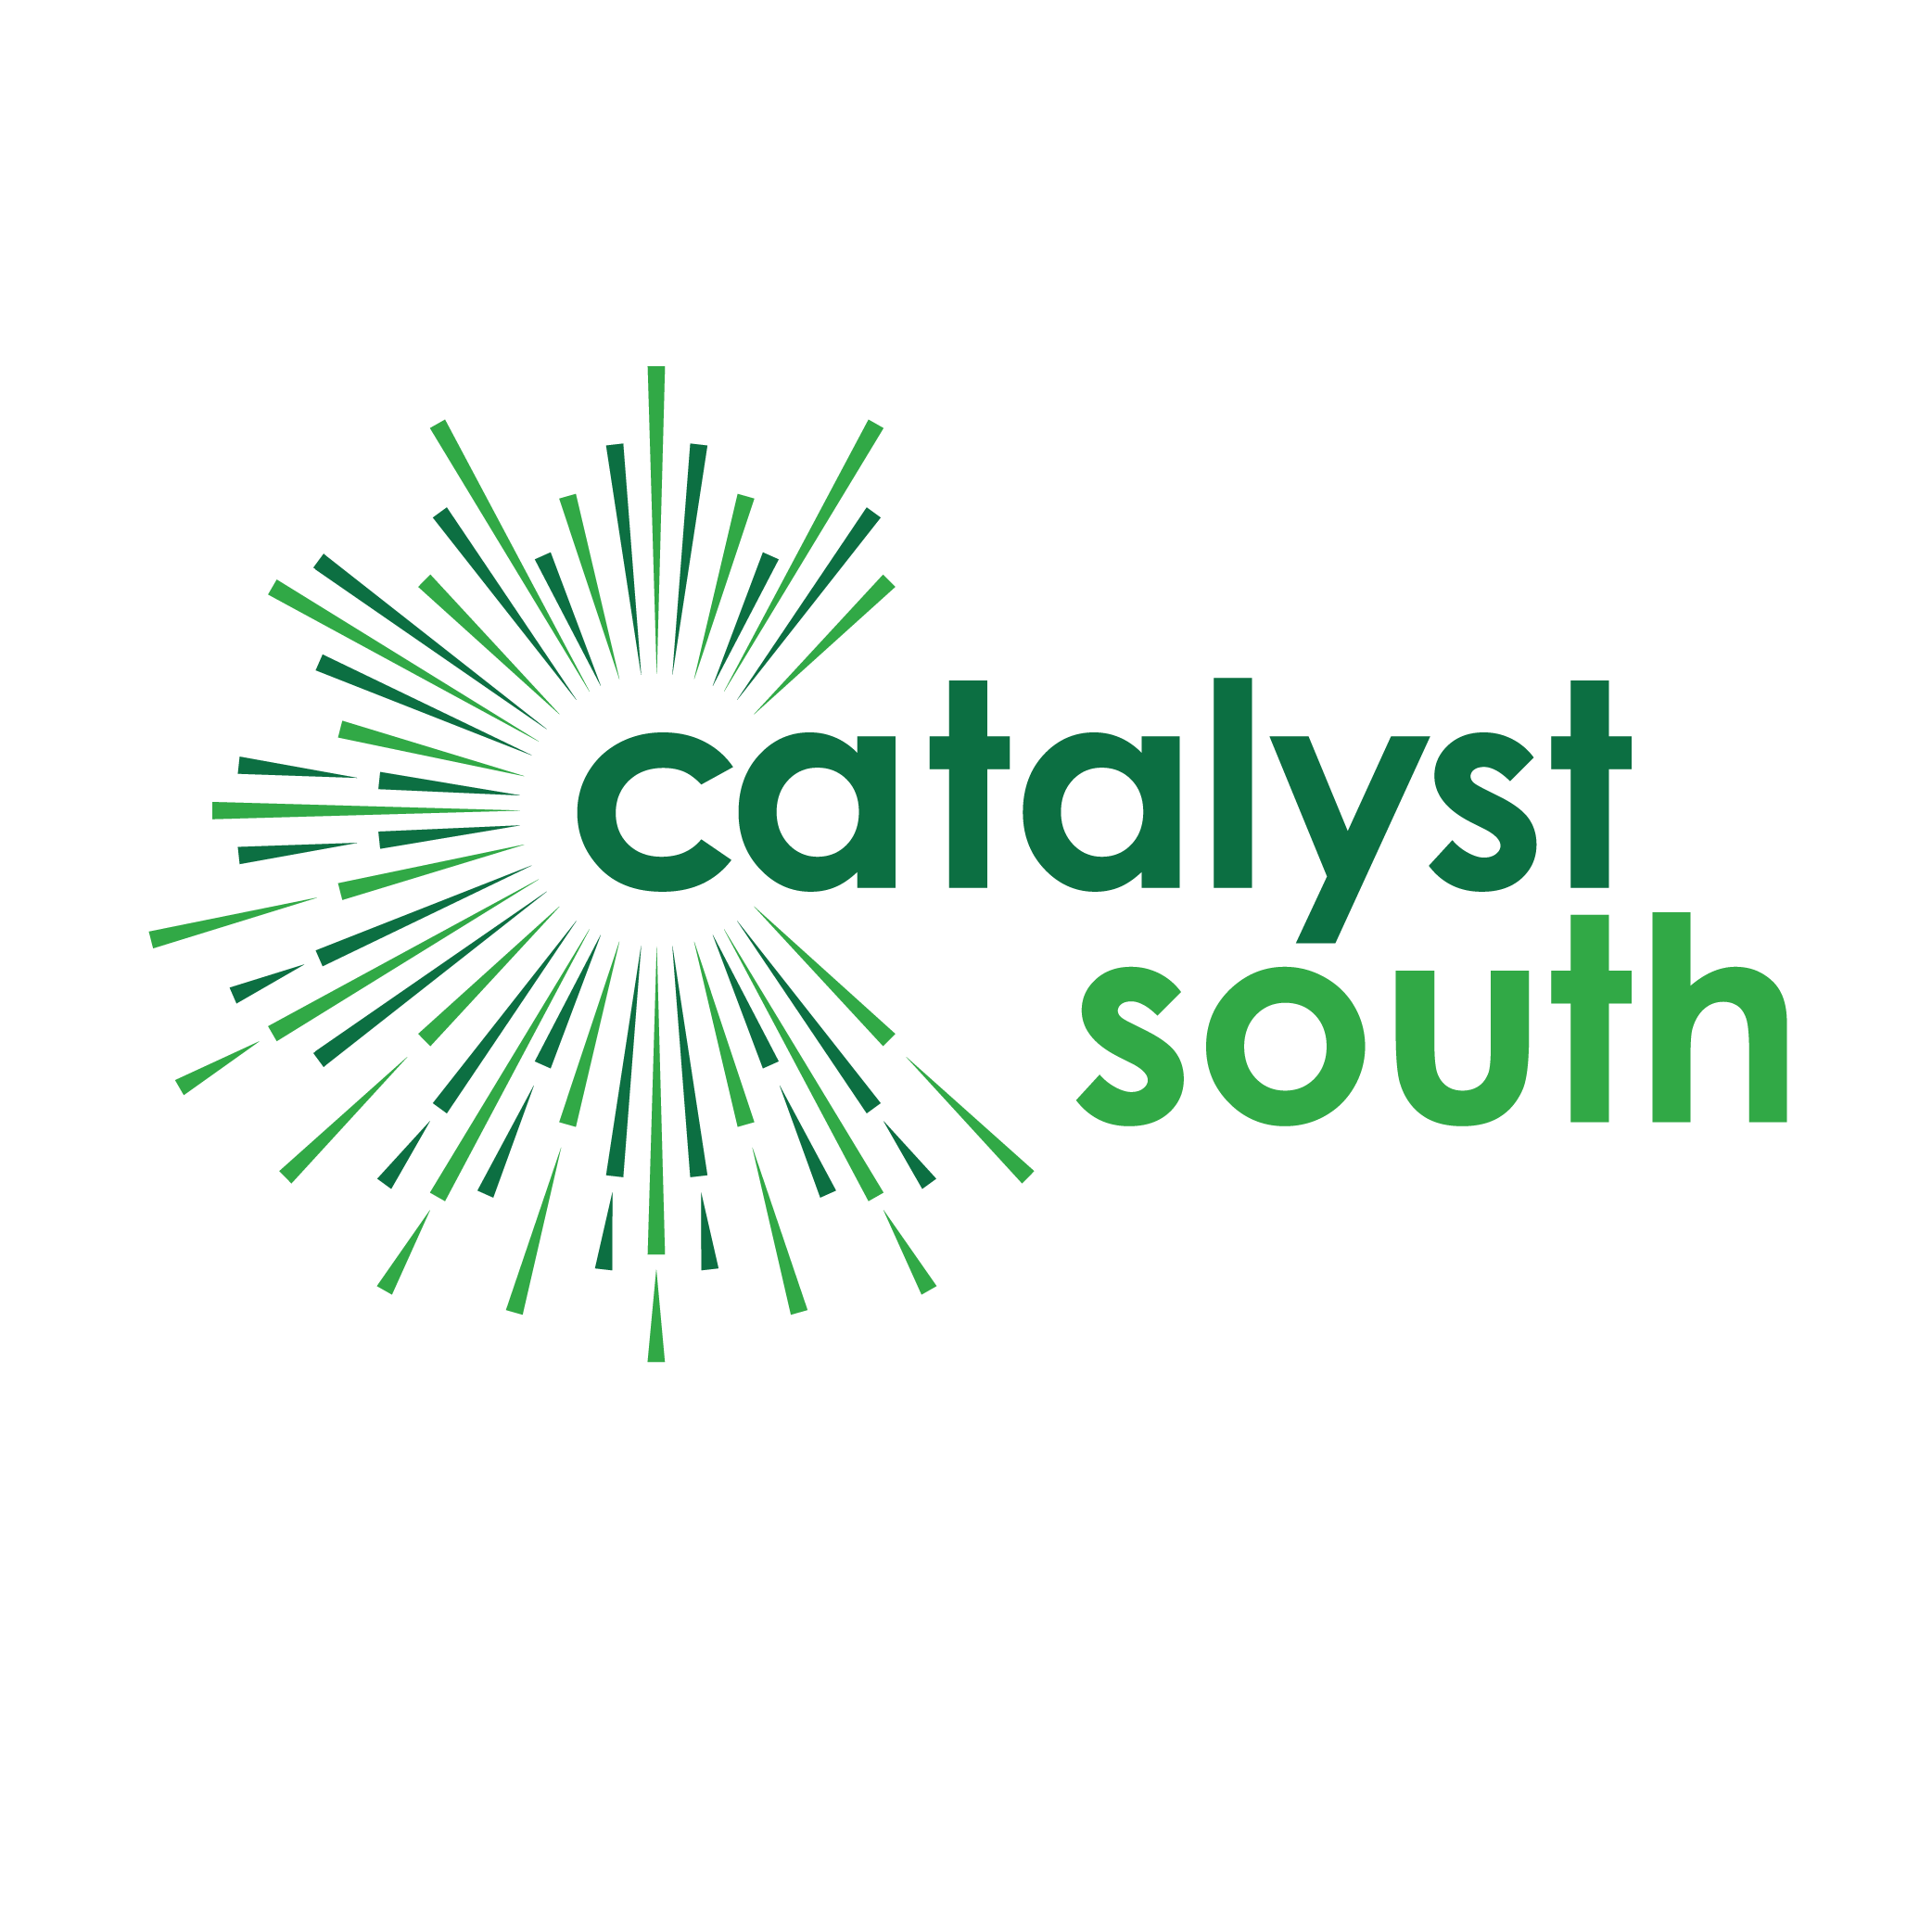 catalyst_south_logo_green_2084